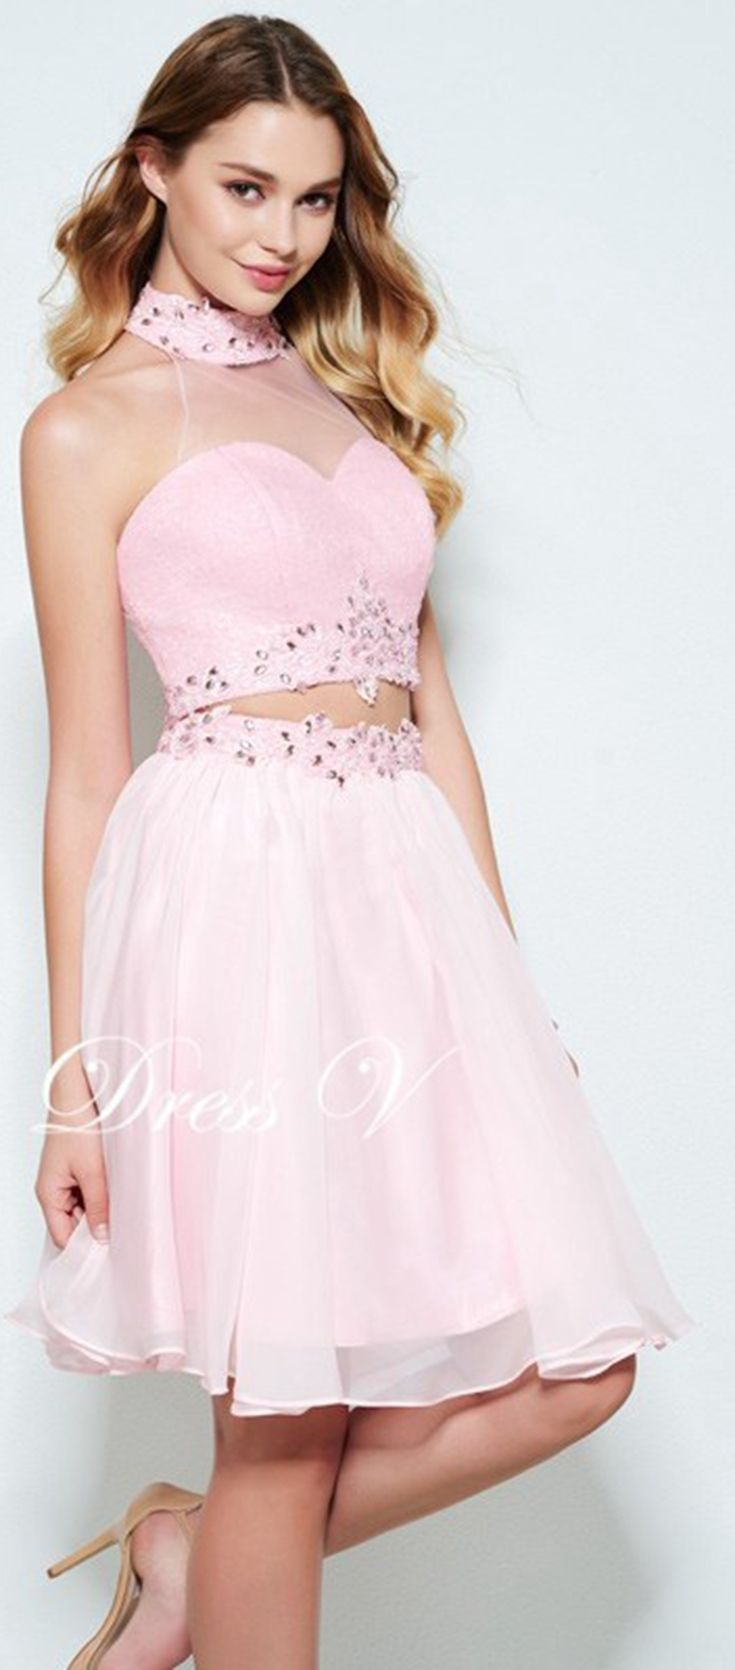 Dressv aline beading ruched homecoming dress pink halter neck above